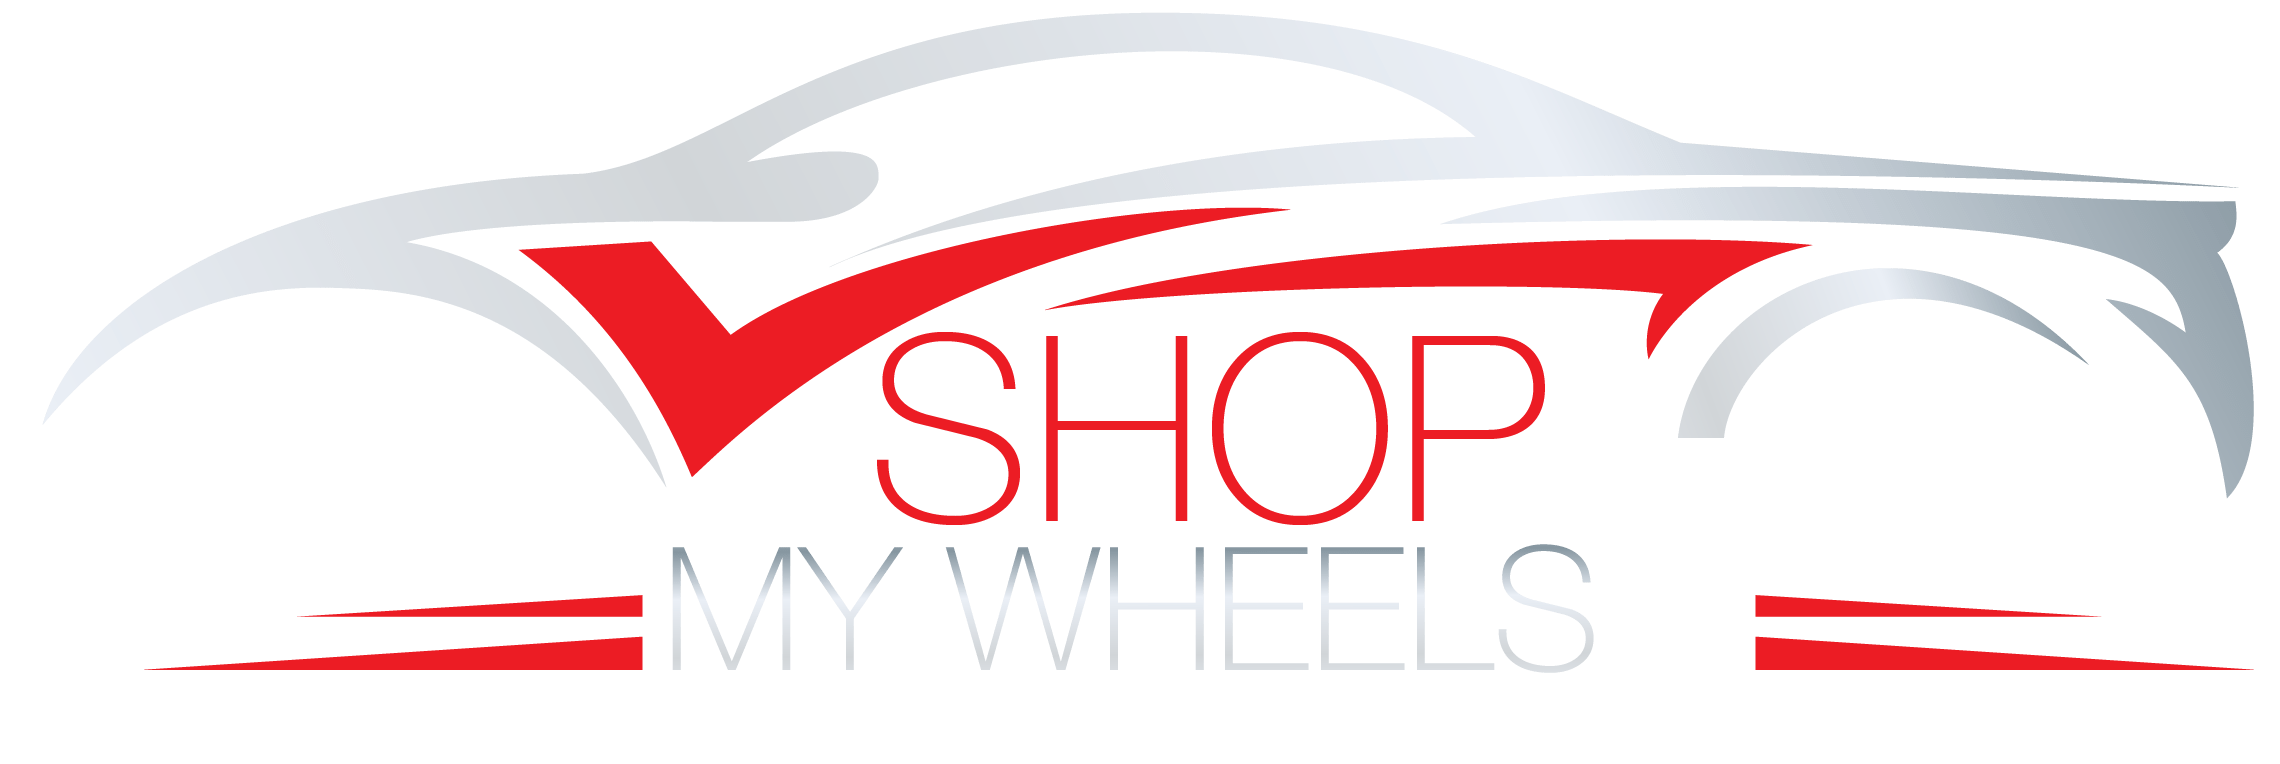 Shop My Wheels